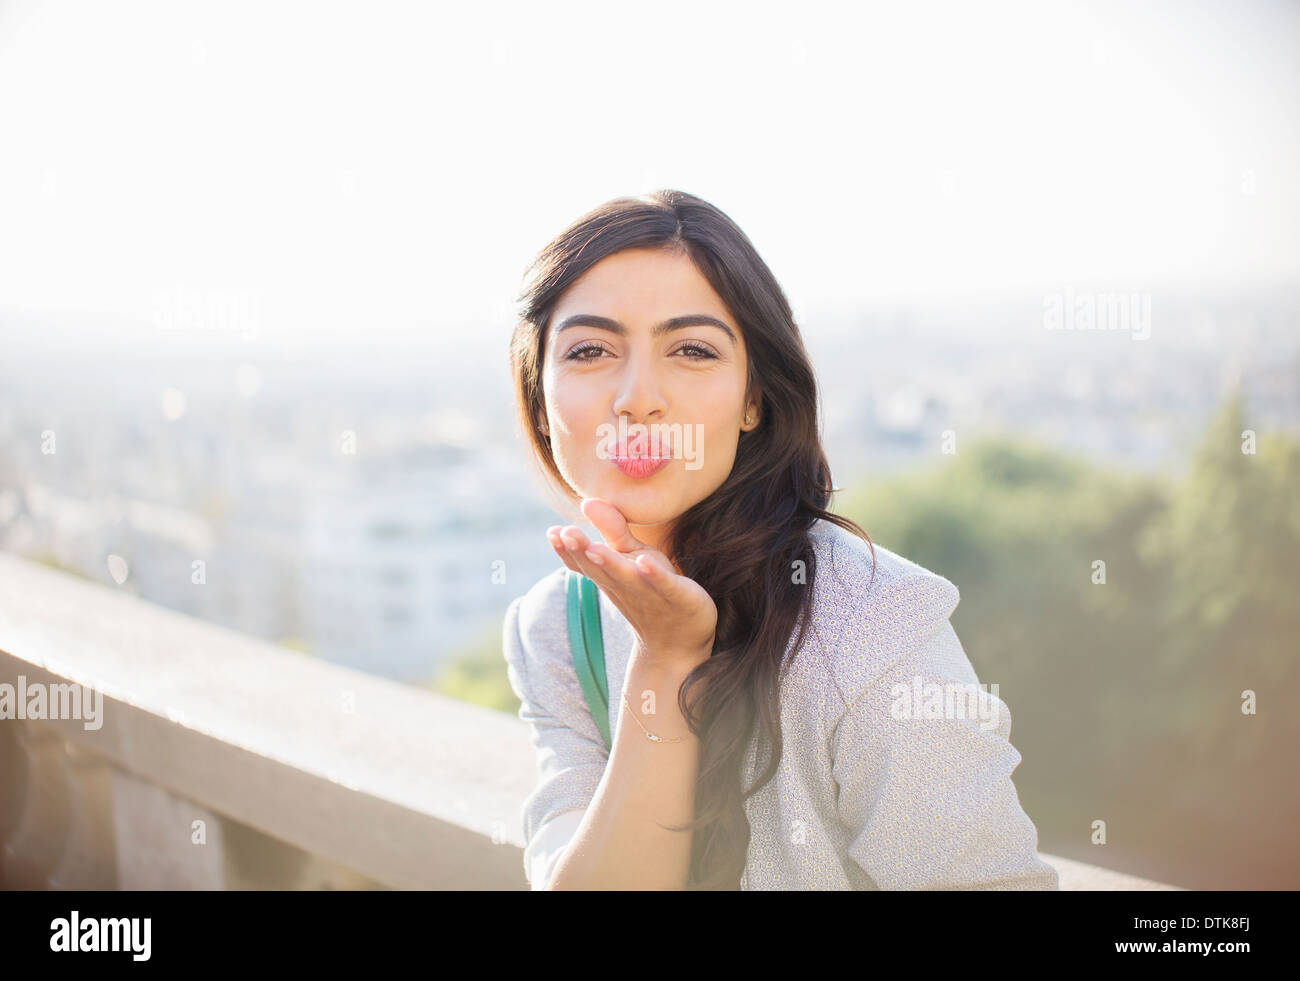 Woman blowing a kiss outdoors - Stock Image